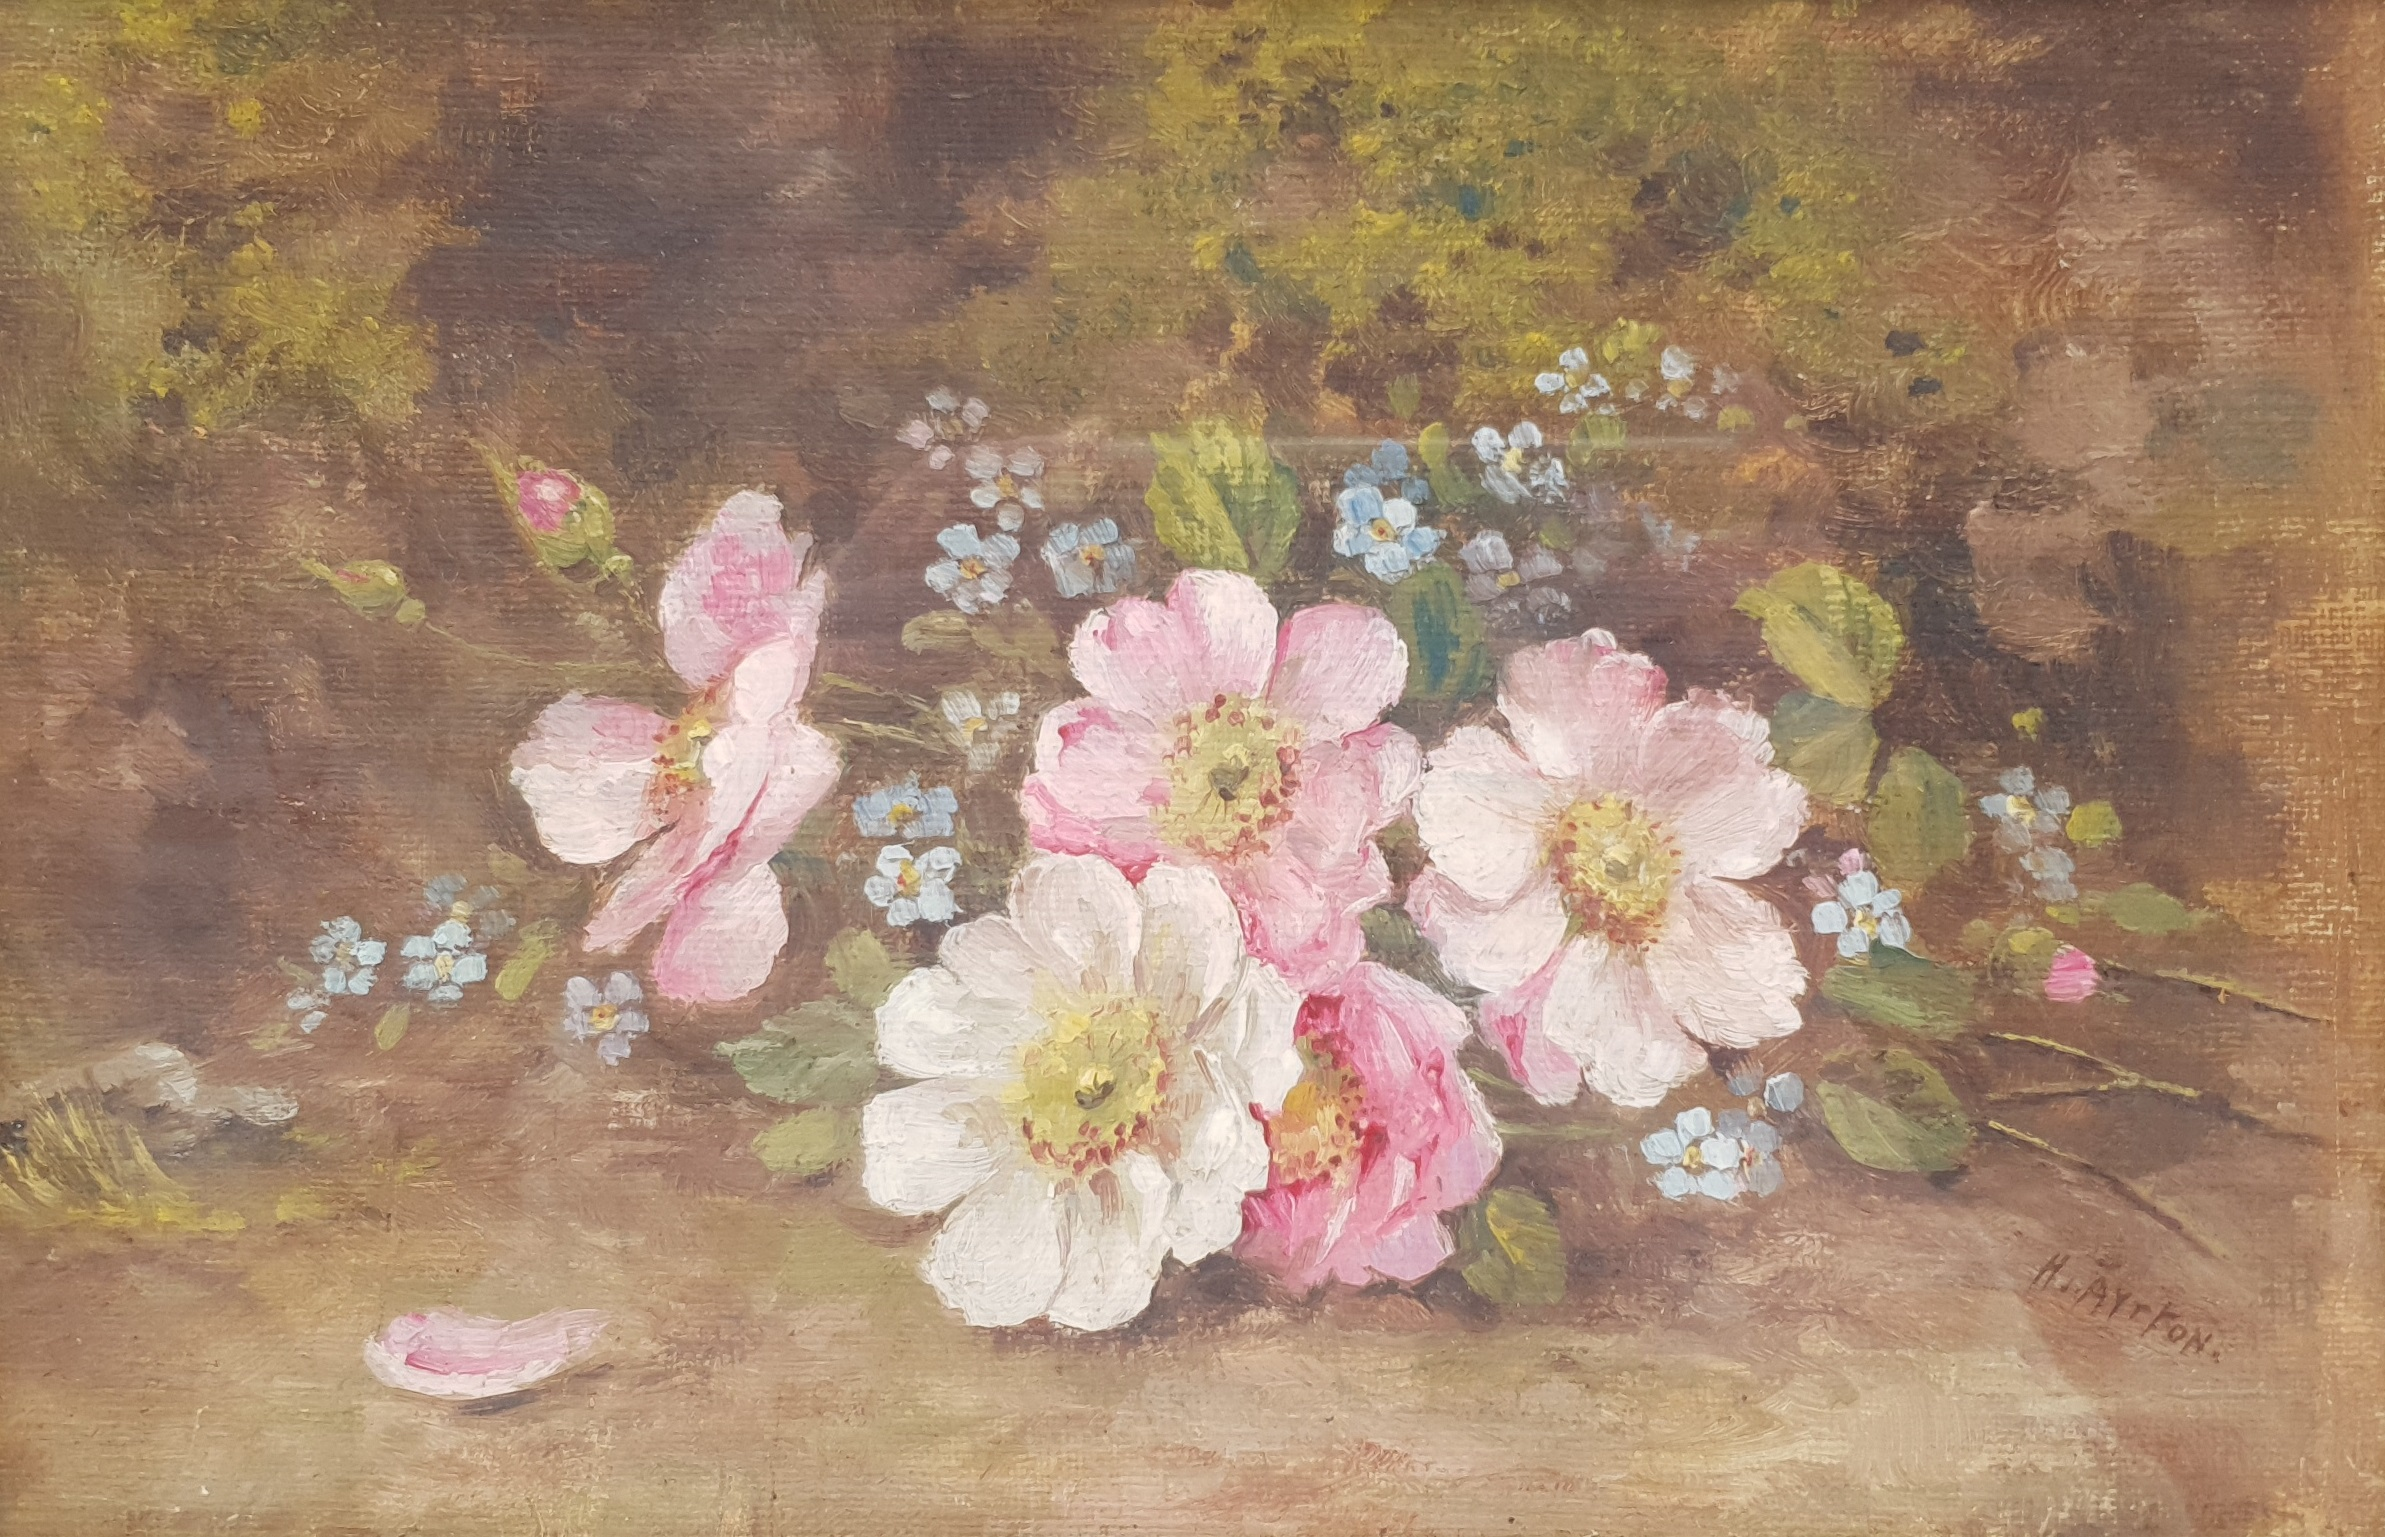 Harry Ayrton (British 1905-1976): Study of Flowers, oil on board signed 18cm x 28cm Notes: Ayrton